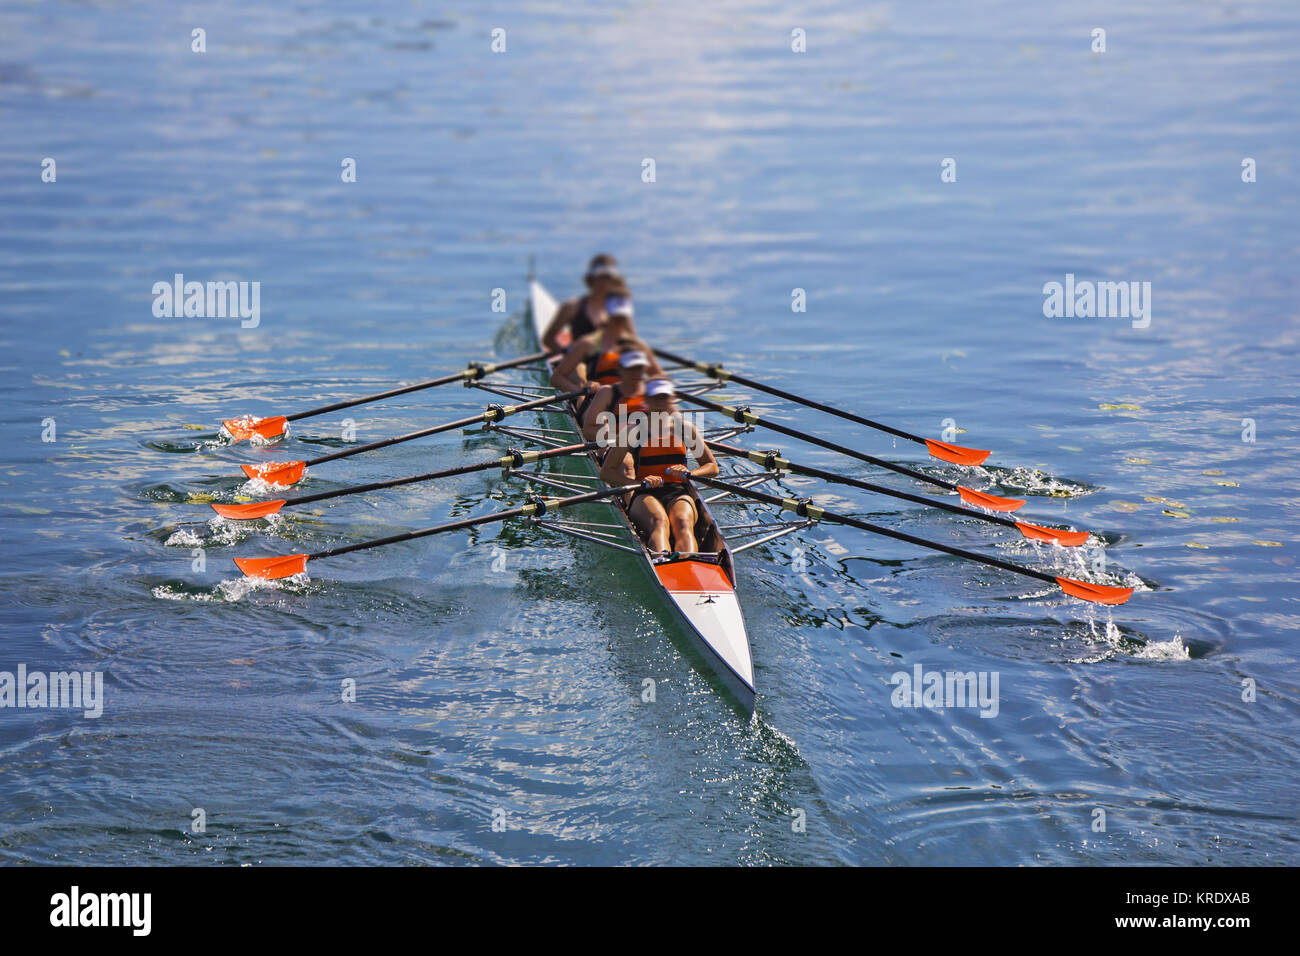 Team of rowing Four-oar women in boat - Stock Image